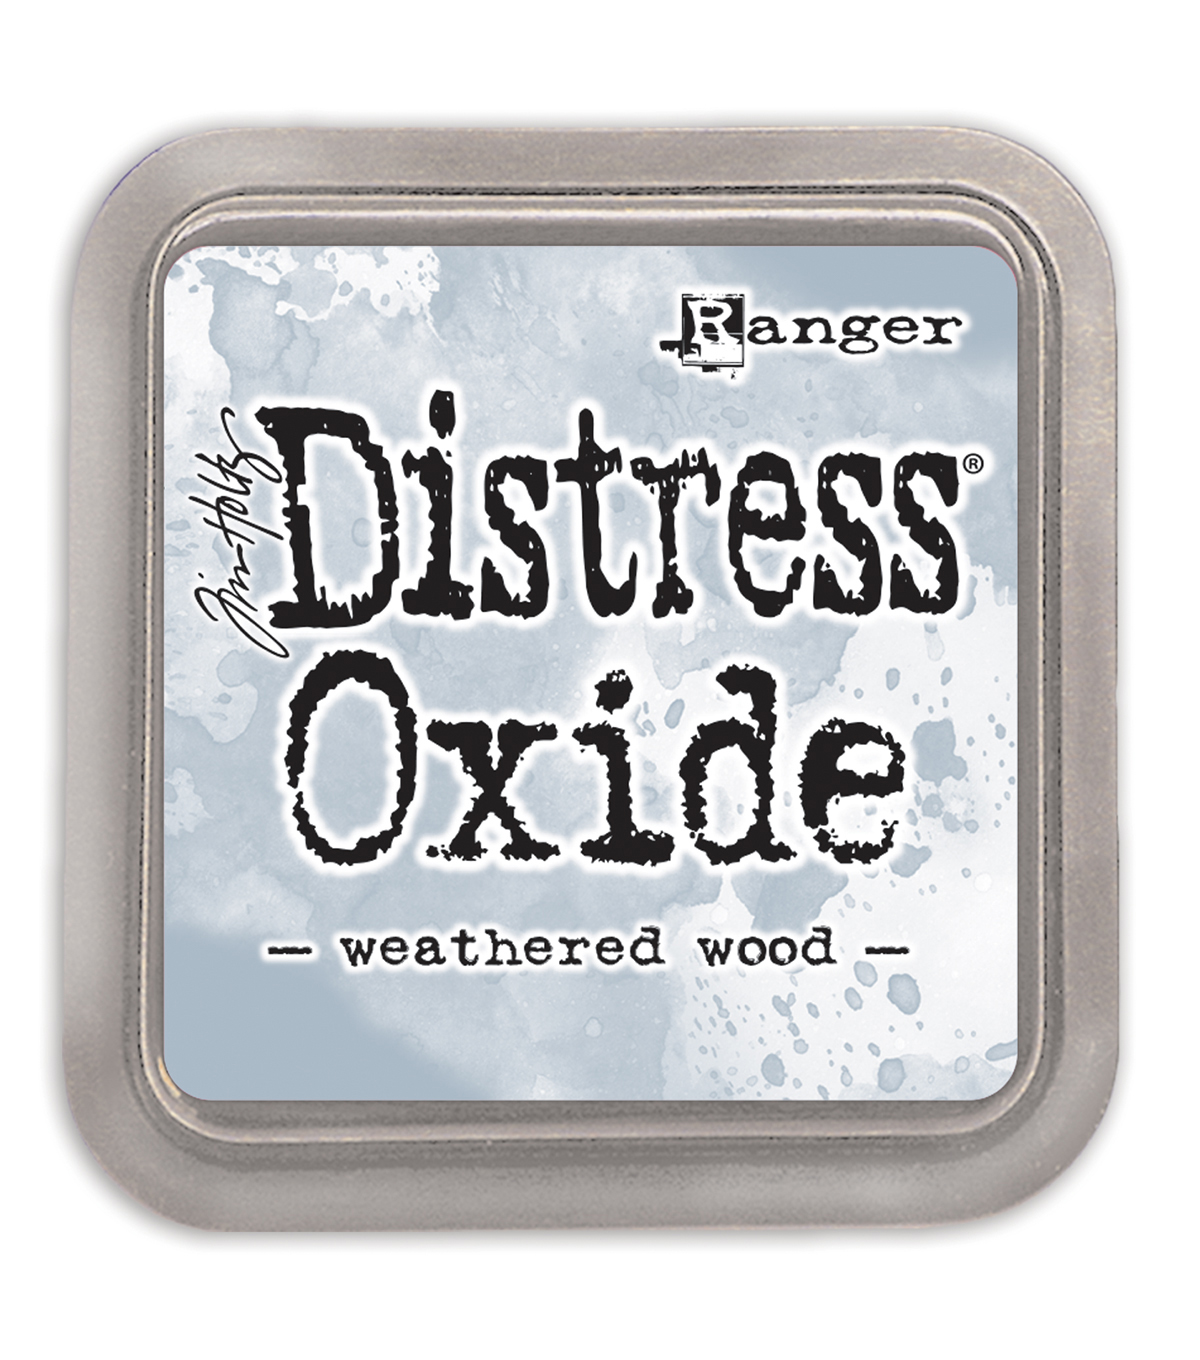 Tim Holtz Distress Oxide Ink Pad, Weathered Wood